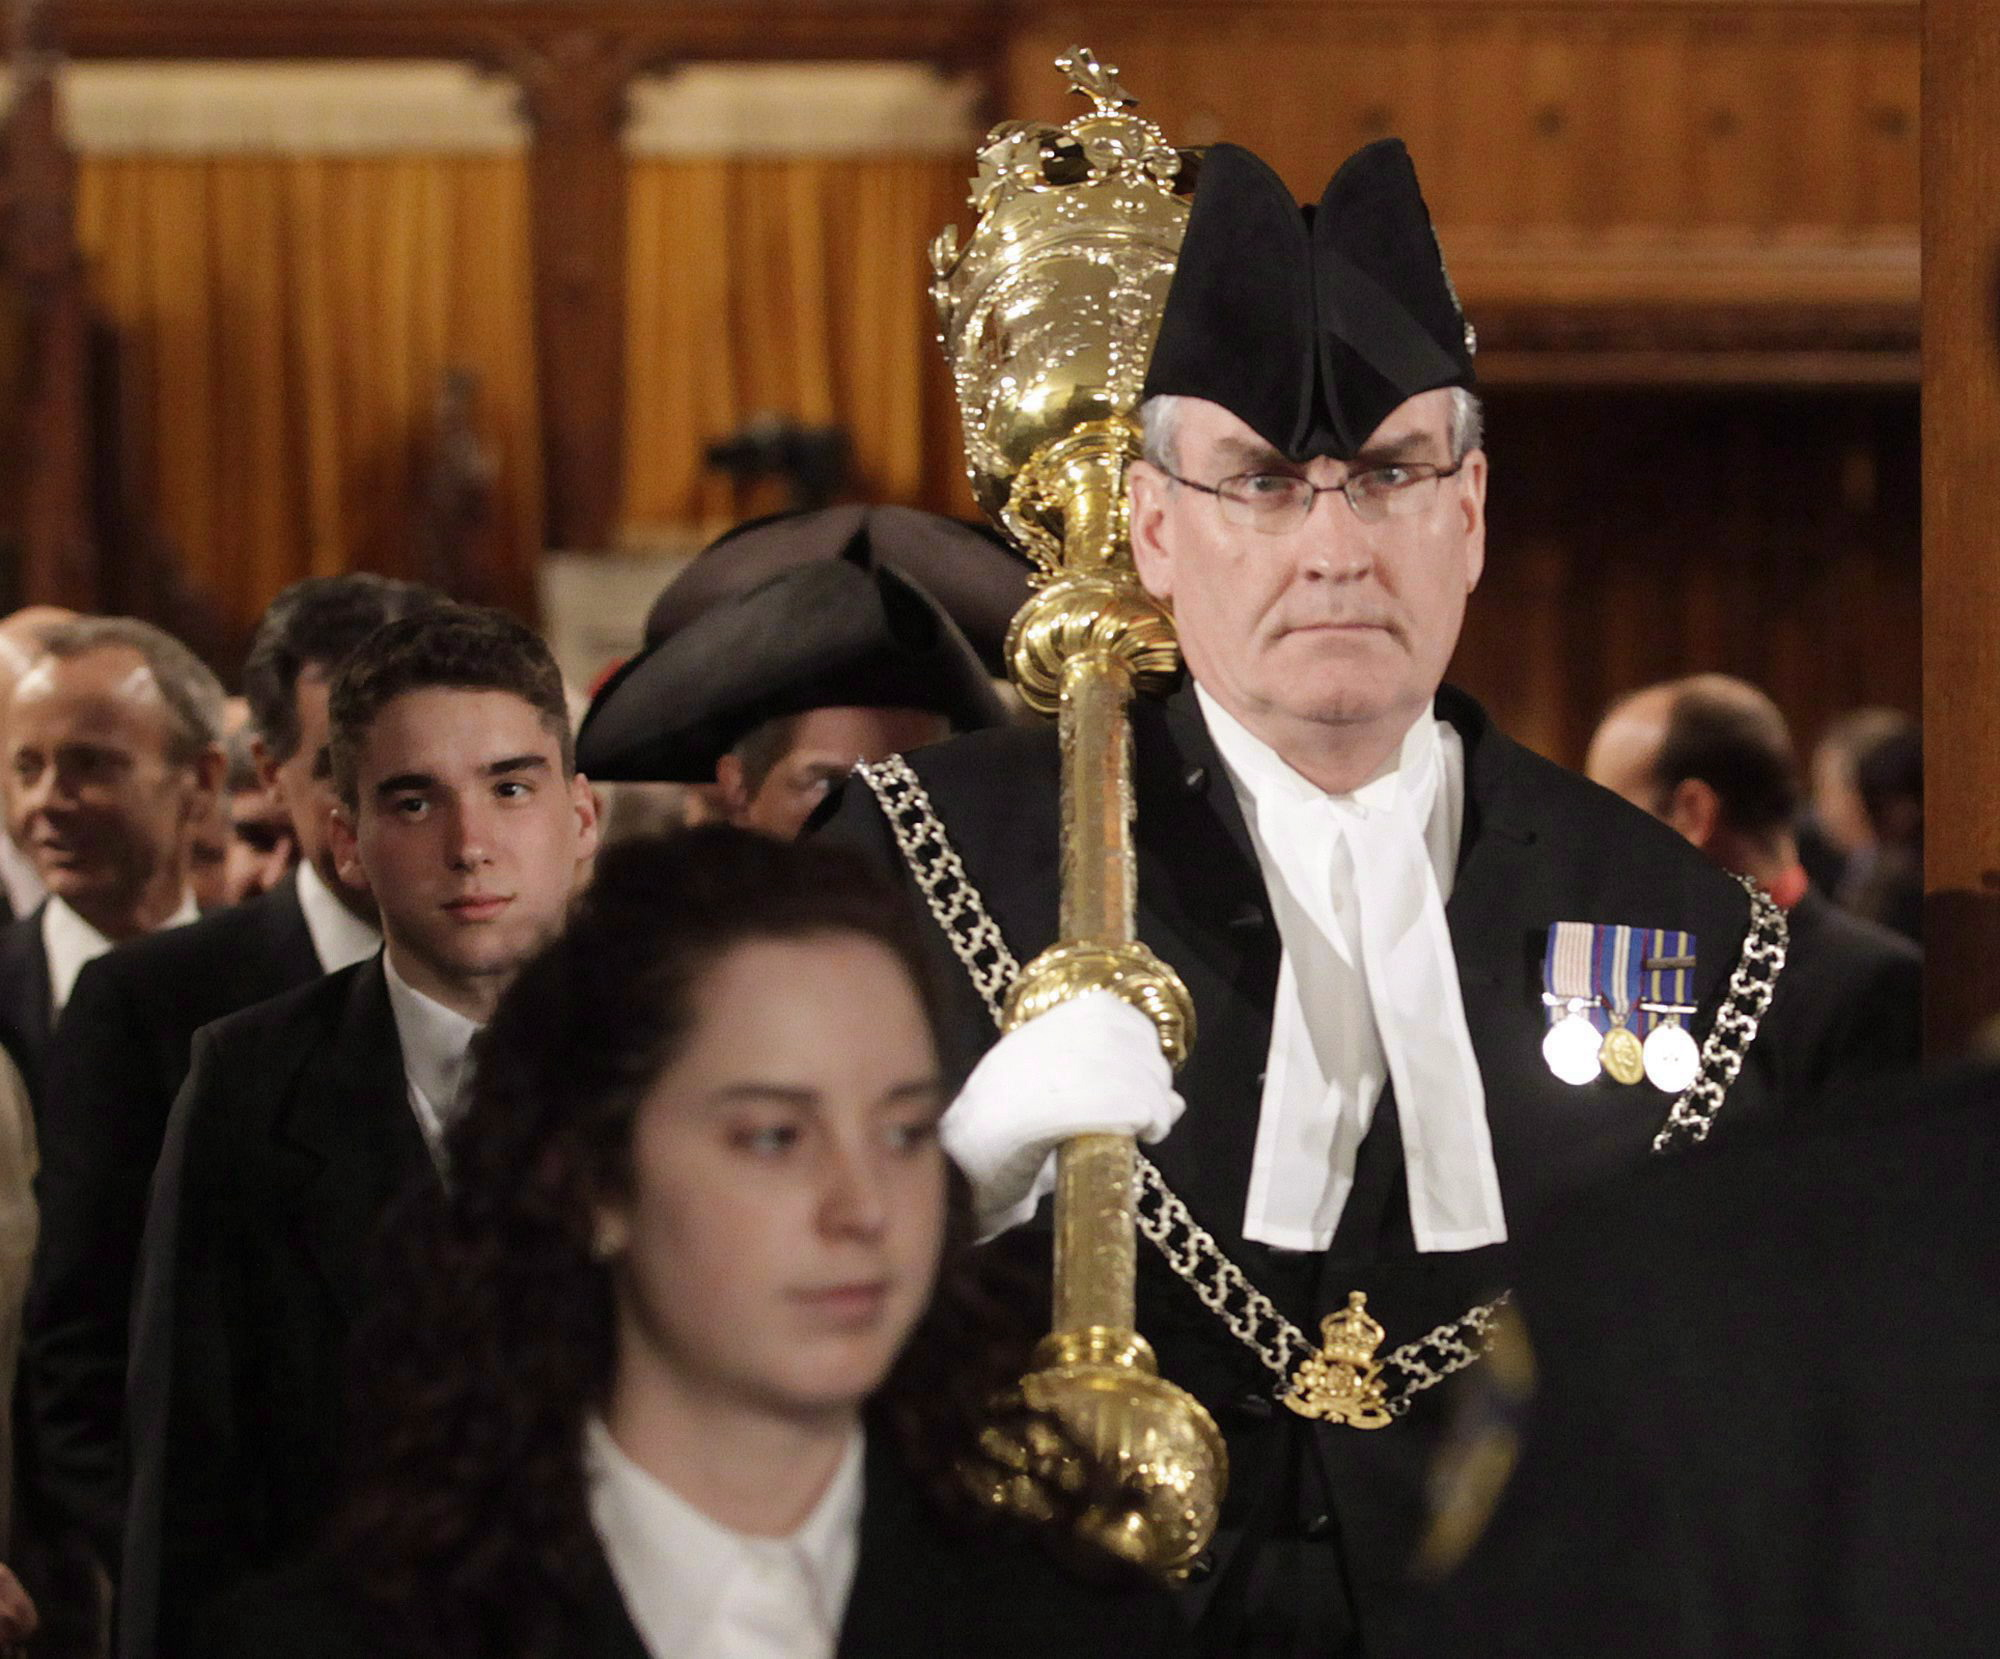 Sergeant-at-arms Kevin Vickers of the House of Commons leads MPs out of the House of Commons on Parliament Hill in Ottawa on Wednesday, March 3, 2010. Two sources told The Canadian Press that Vickers shot an assailant on Parliament Hill on Wednesday. (Pawel Dwulit / The Canadian Press)